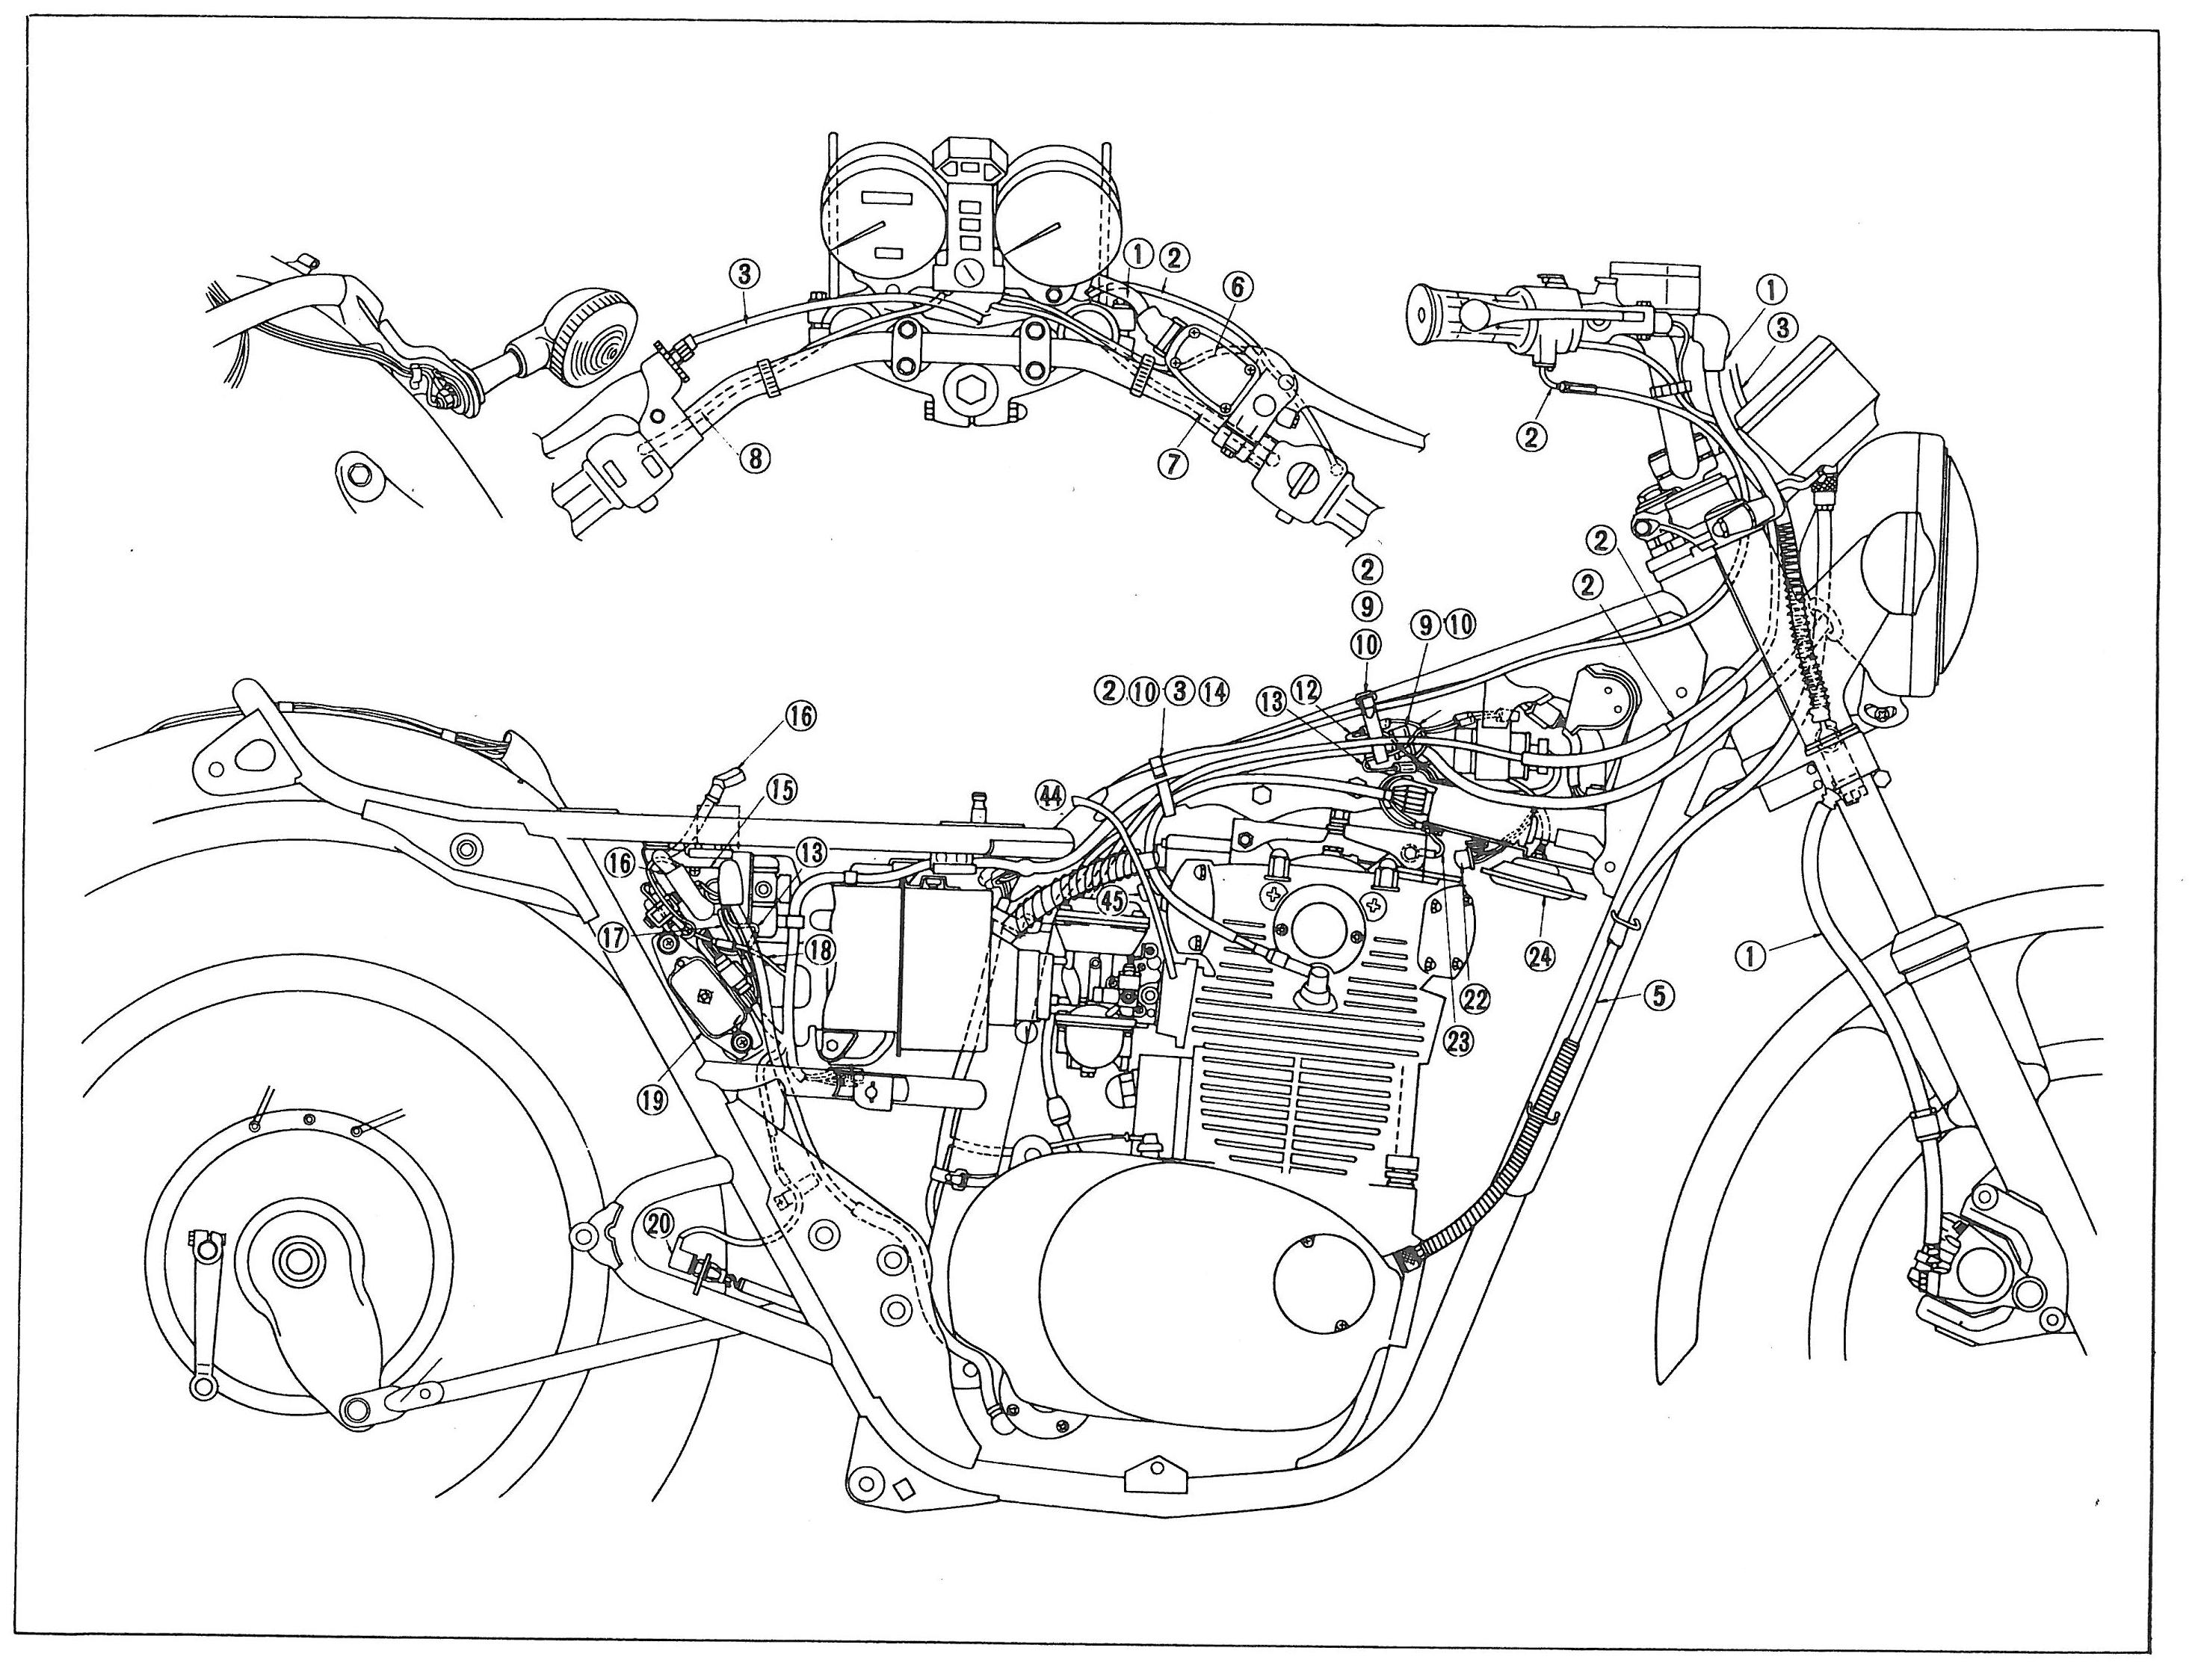 yamaha xs650 wiring diagram 2011 honda pilot fuse 77 free engine image for user